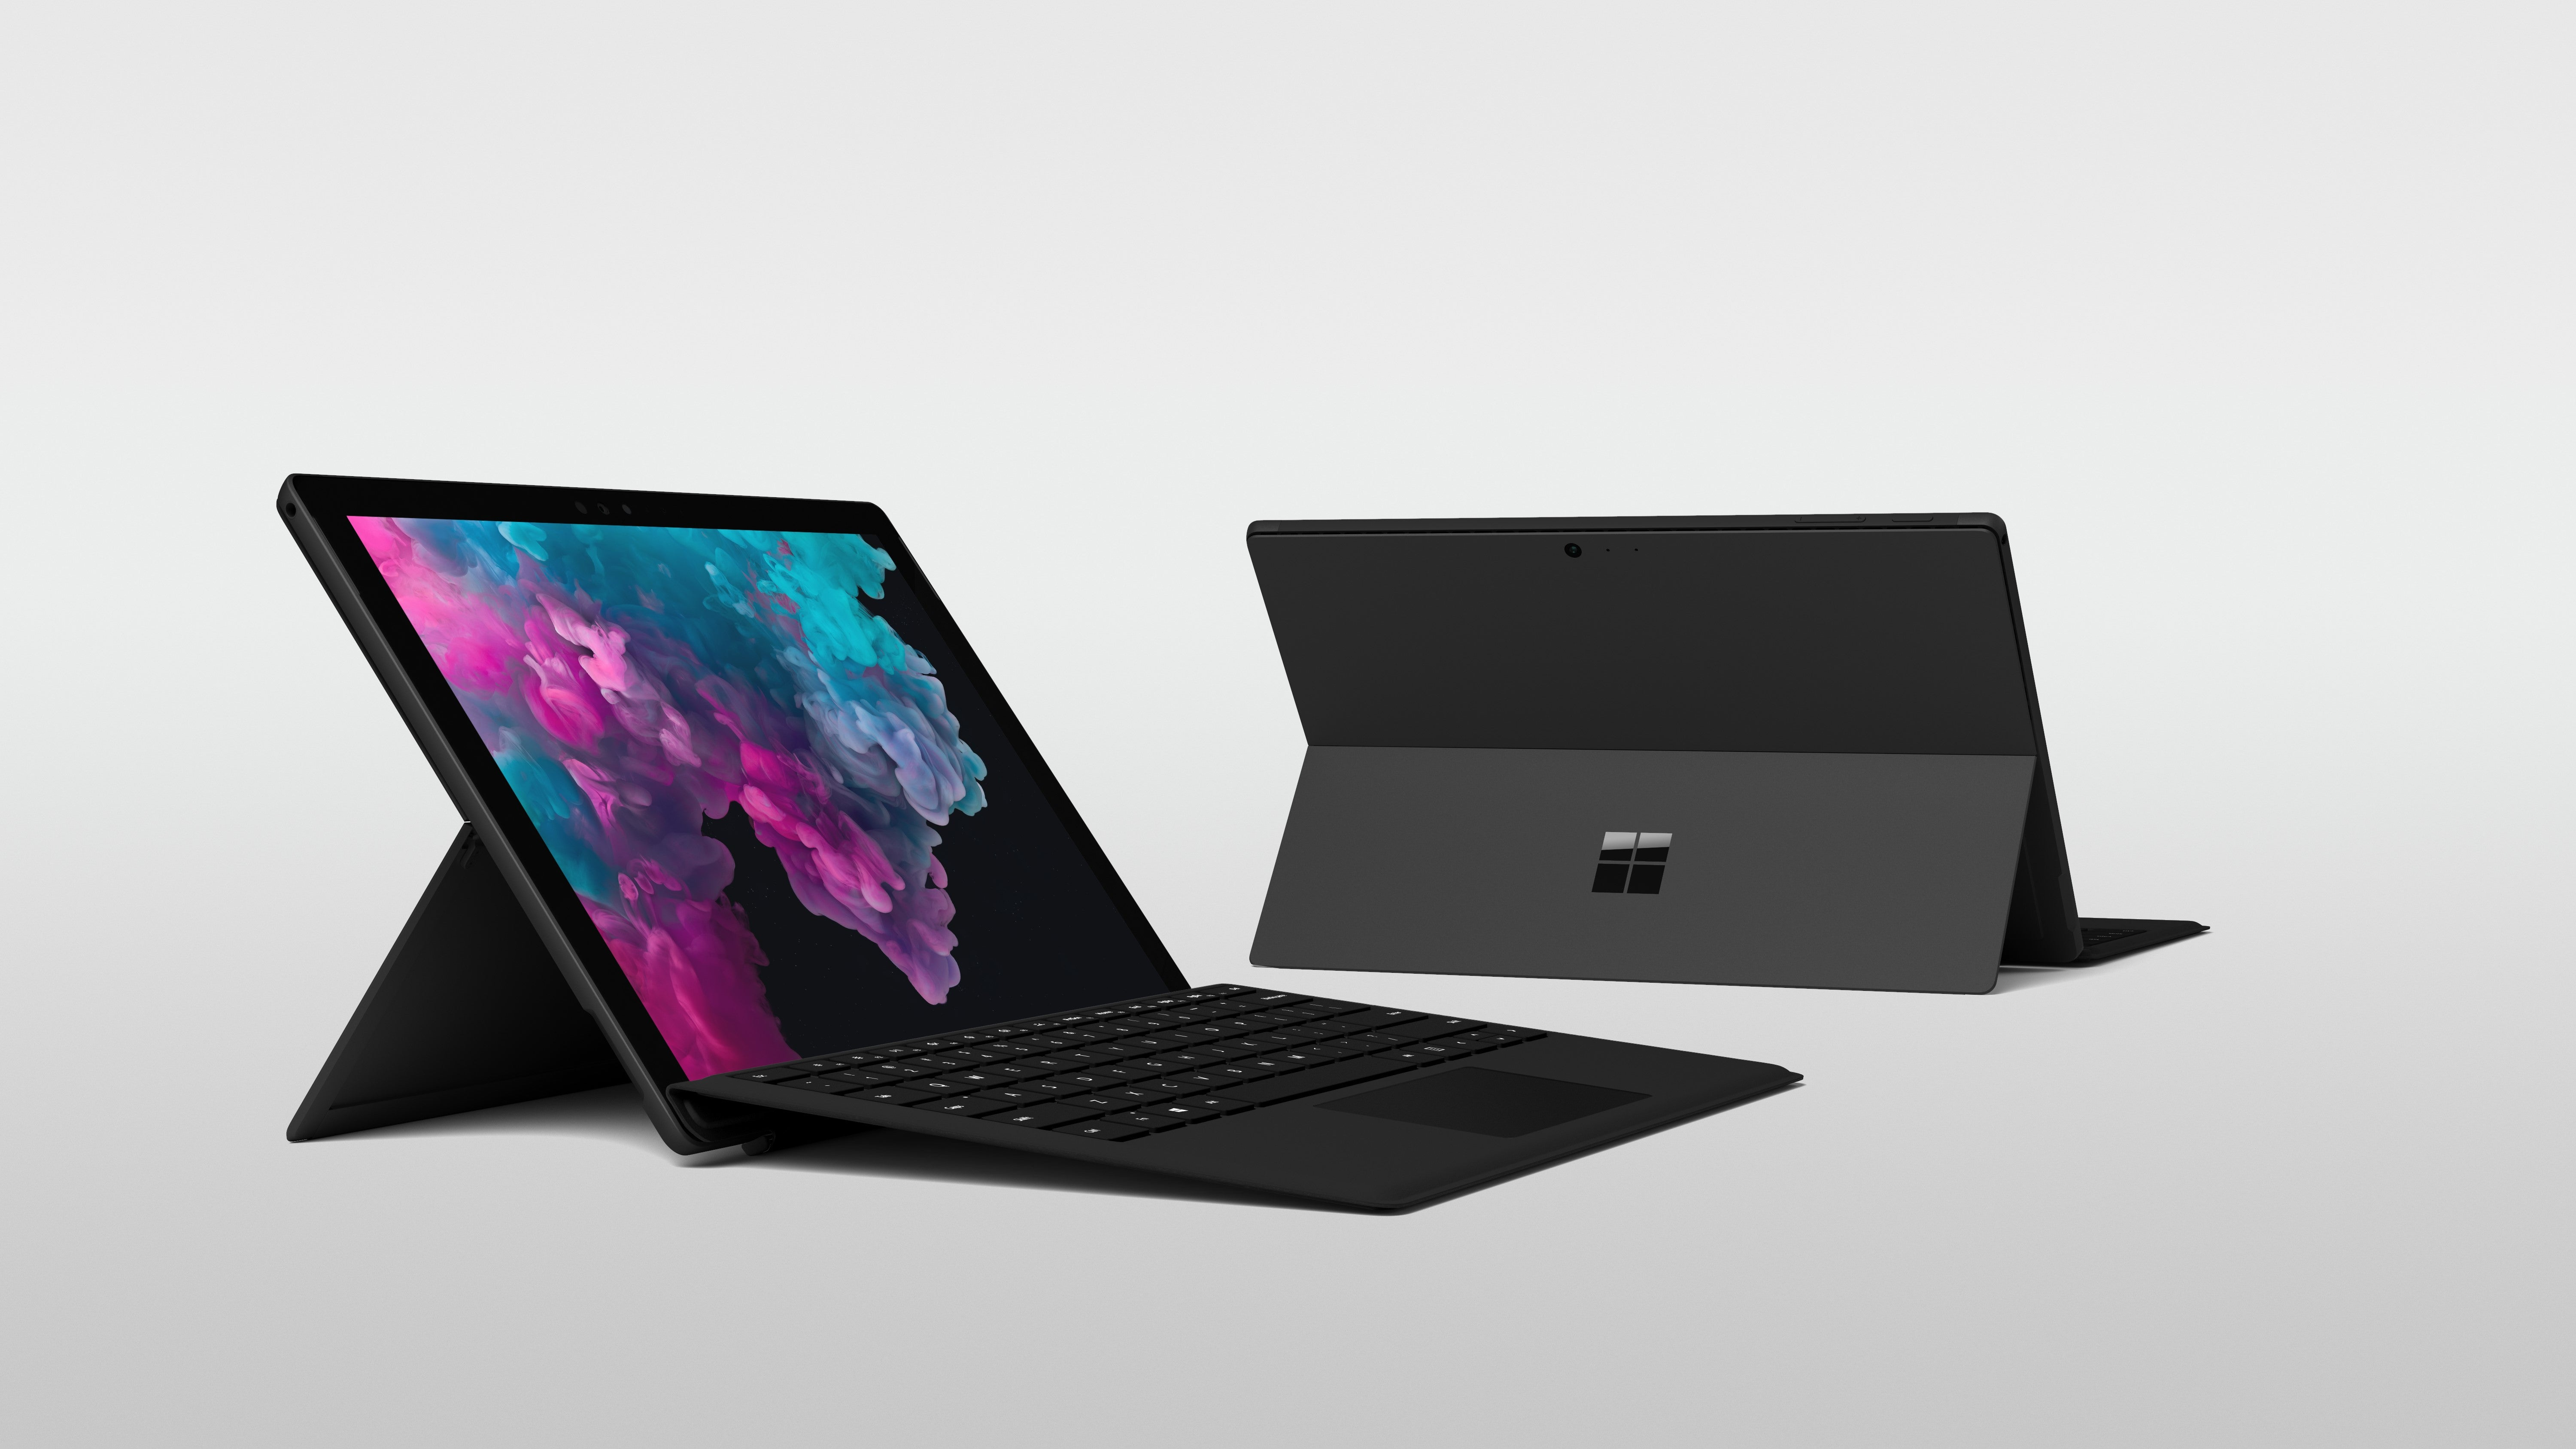 Microsoft surface 3 release date in Melbourne